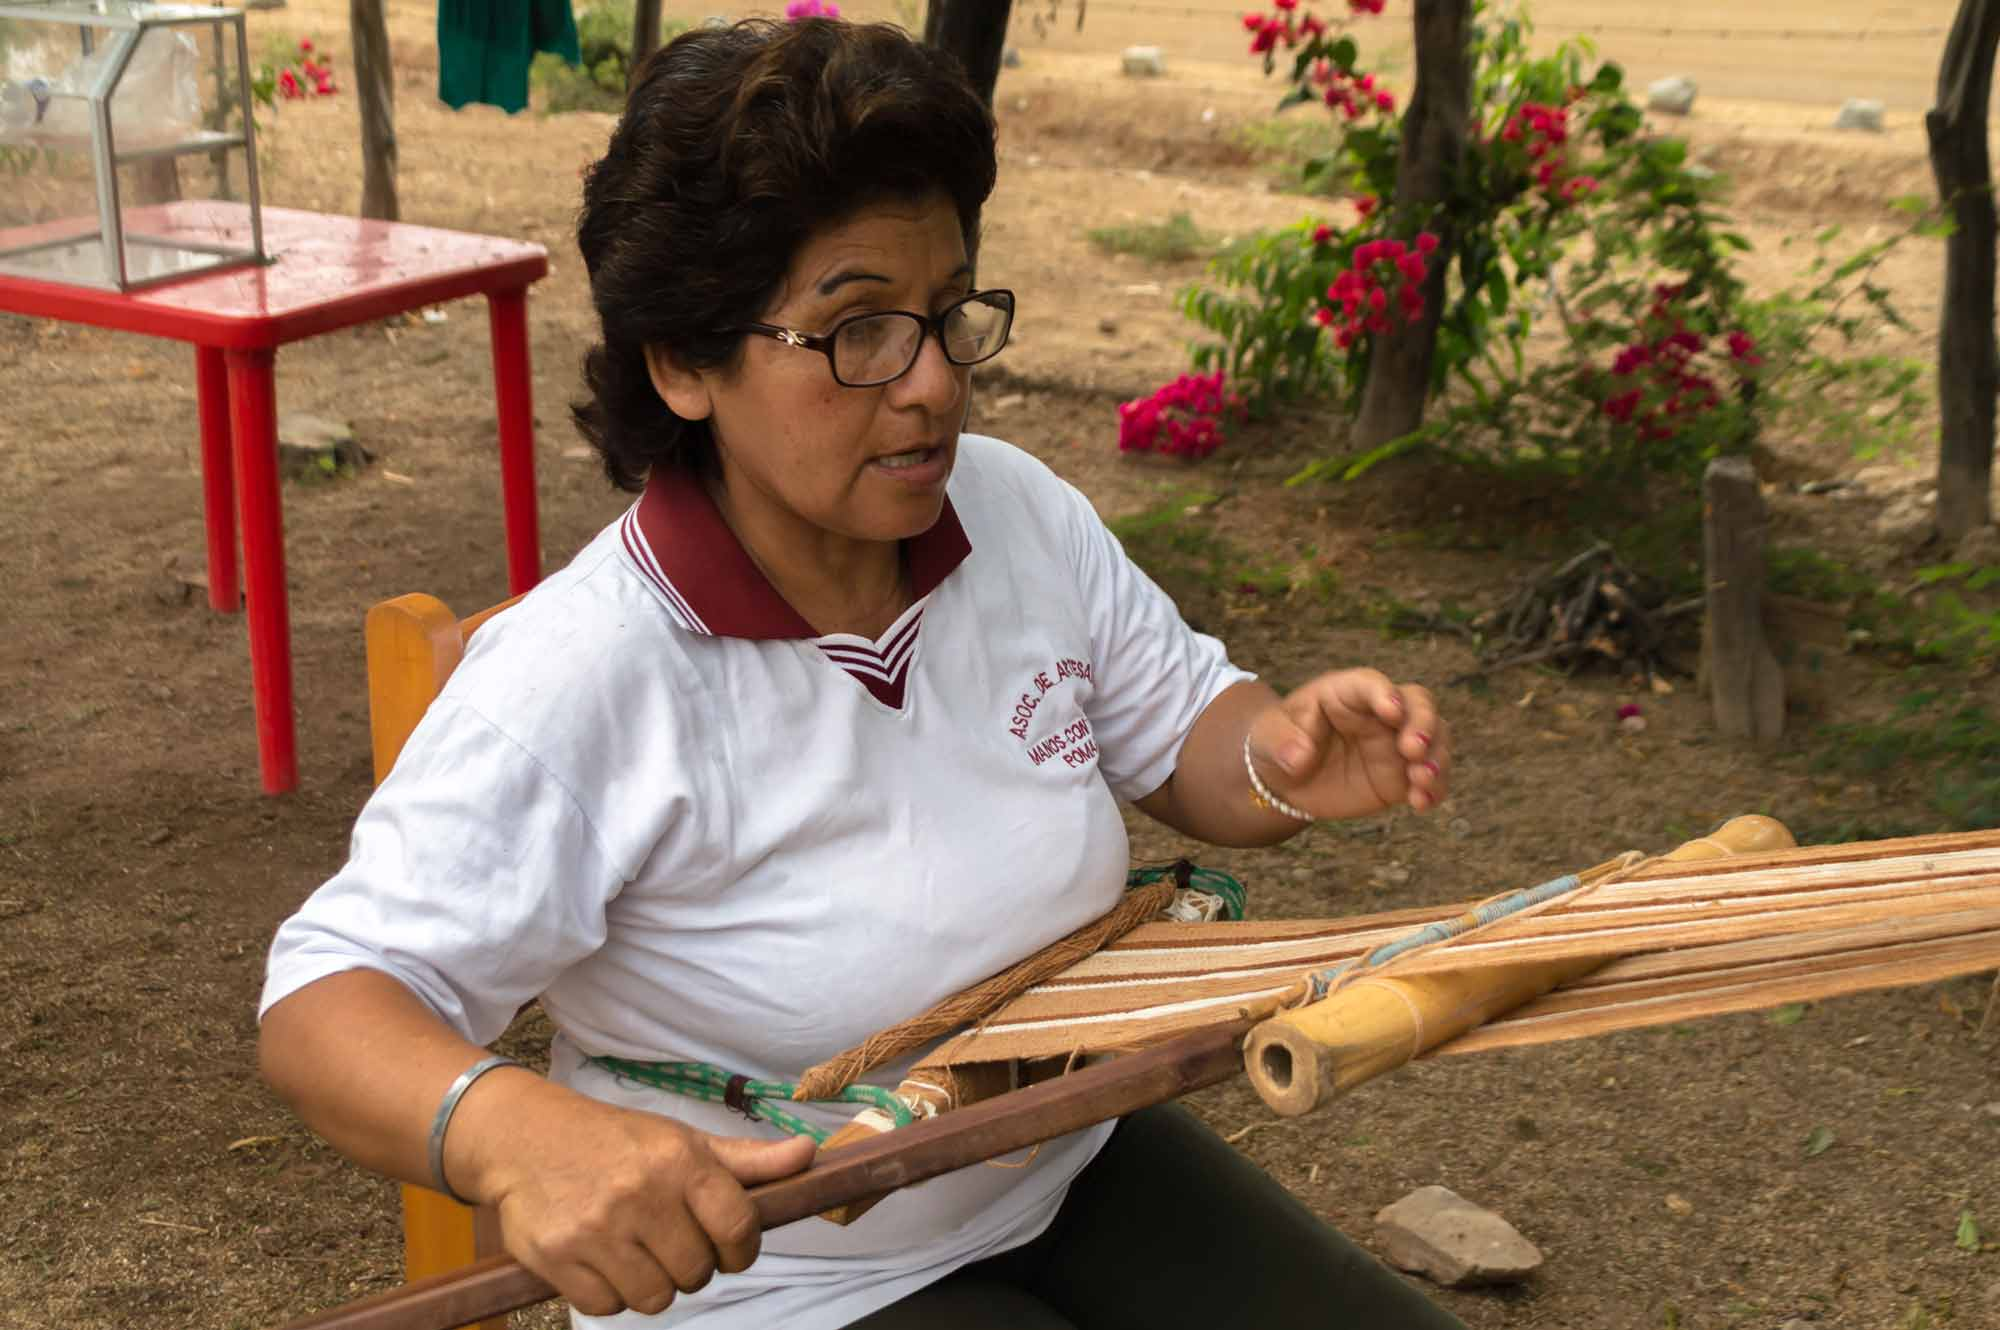 A weaver makes textiles using organic, wild cotton in the Bosque de Pomac in northern Peru, a responsible tourism destination in South America